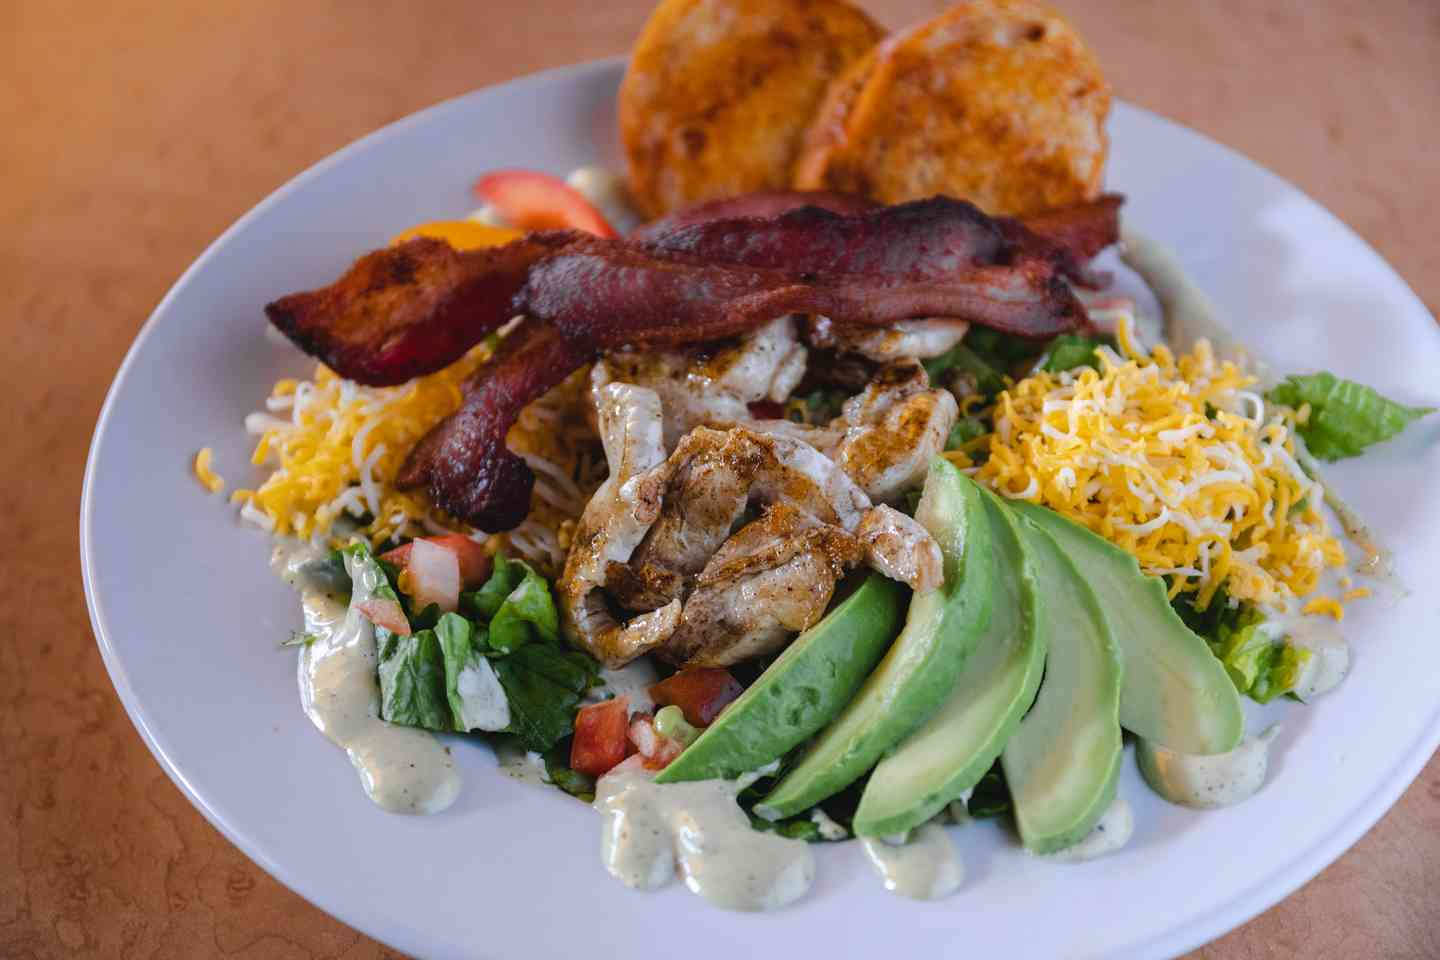 Chicken, Bacon, & Avocado Salad